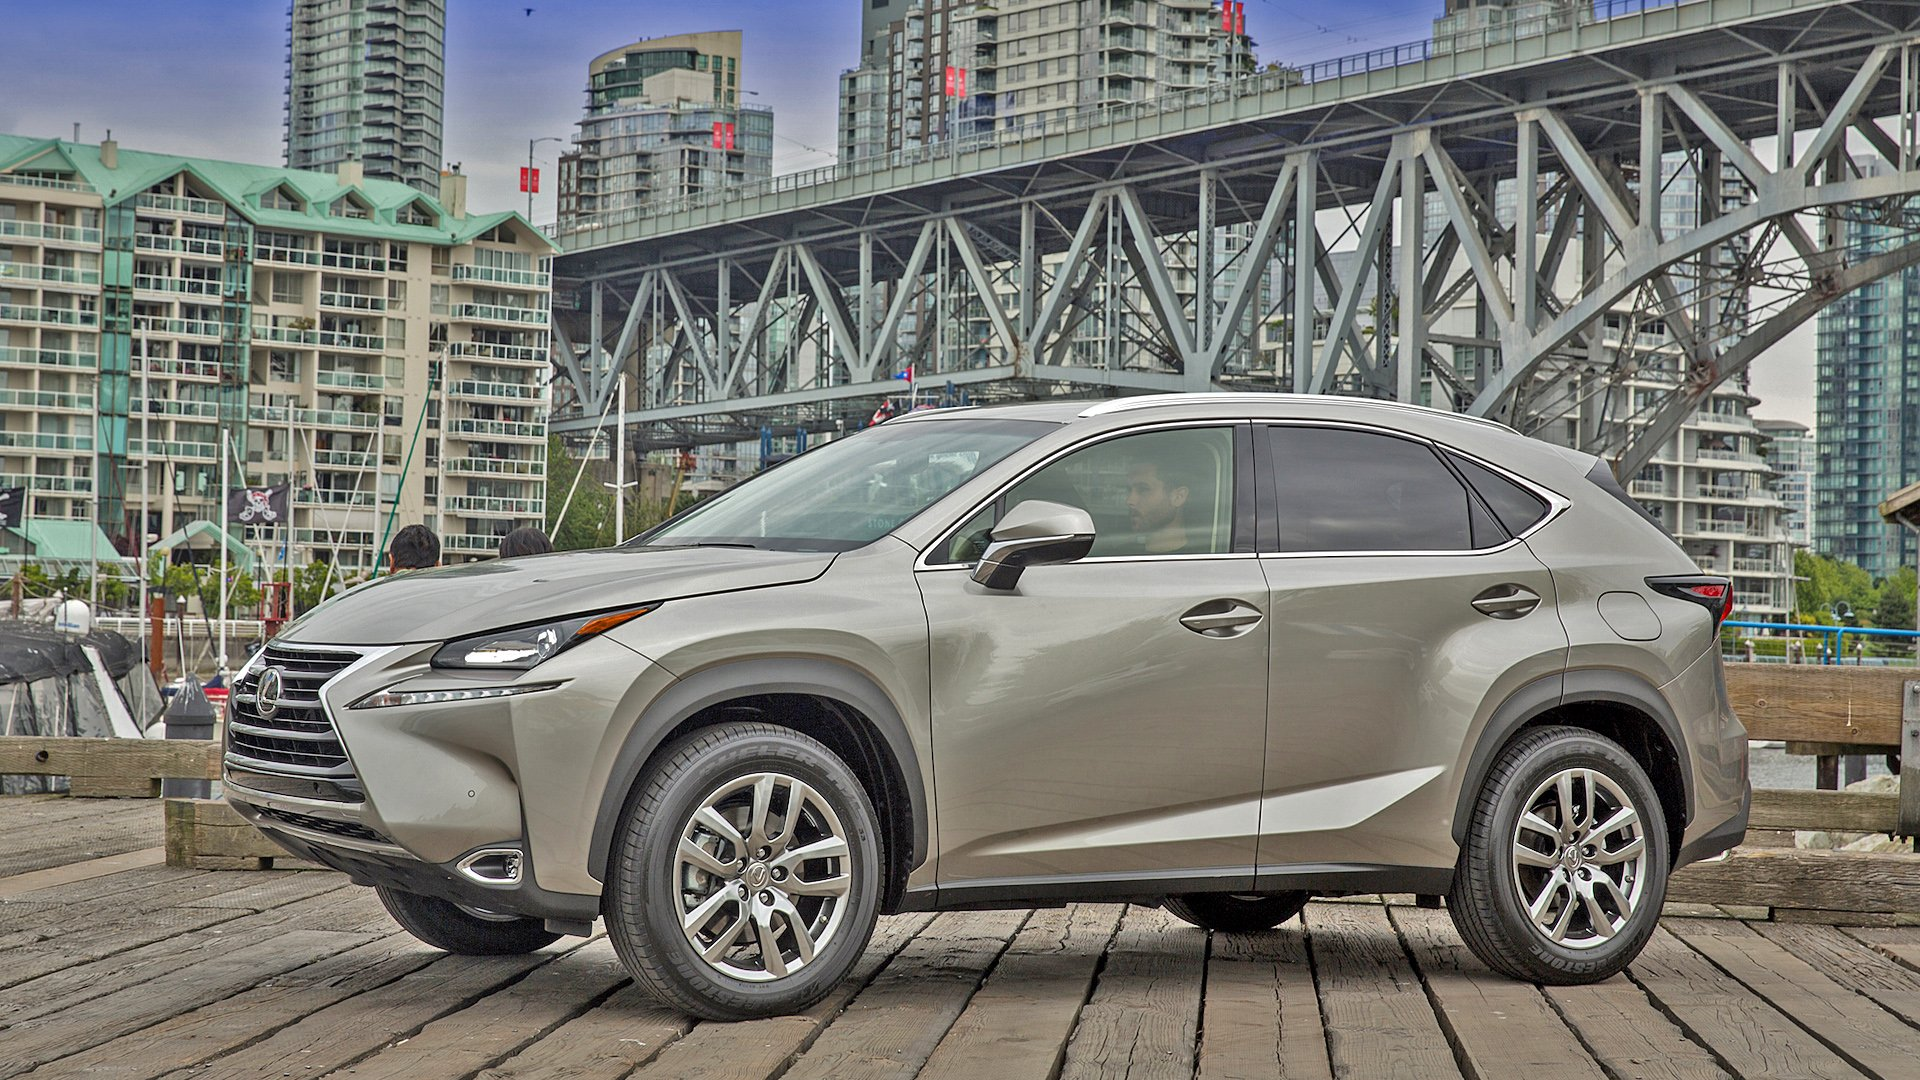 New 2019 Lexus NX 200 Wallpaper HD Desktop